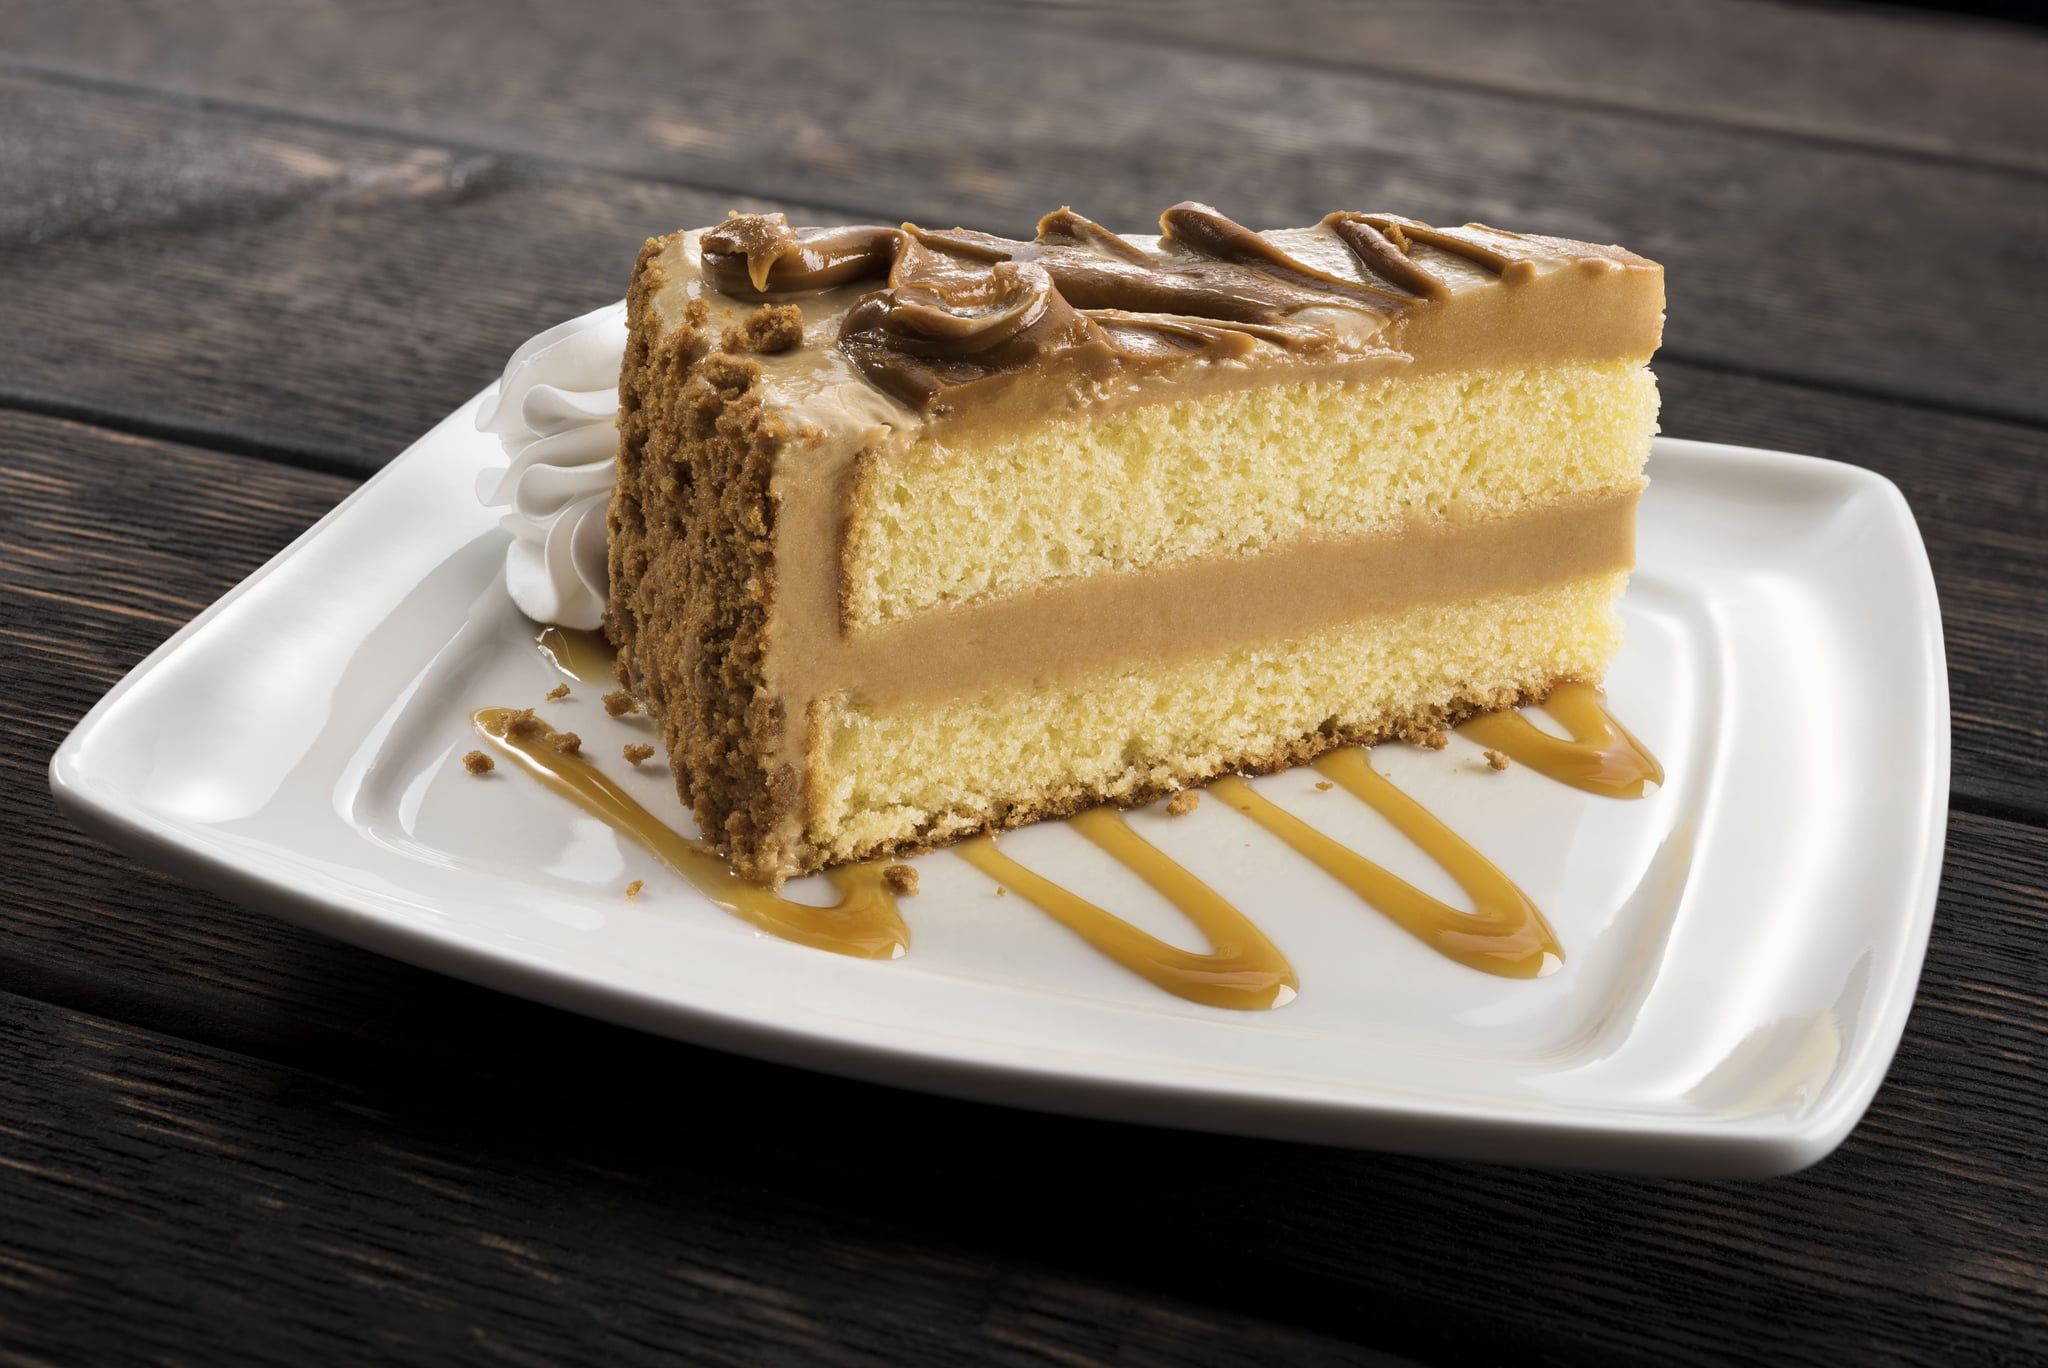 Youu0027re About To Have A New Reason To Go To Olive Garden That Has Nothing To  Do With Pasta: Cookie Butter Cake! The Restaurant Chain Has Announced Its  New ...